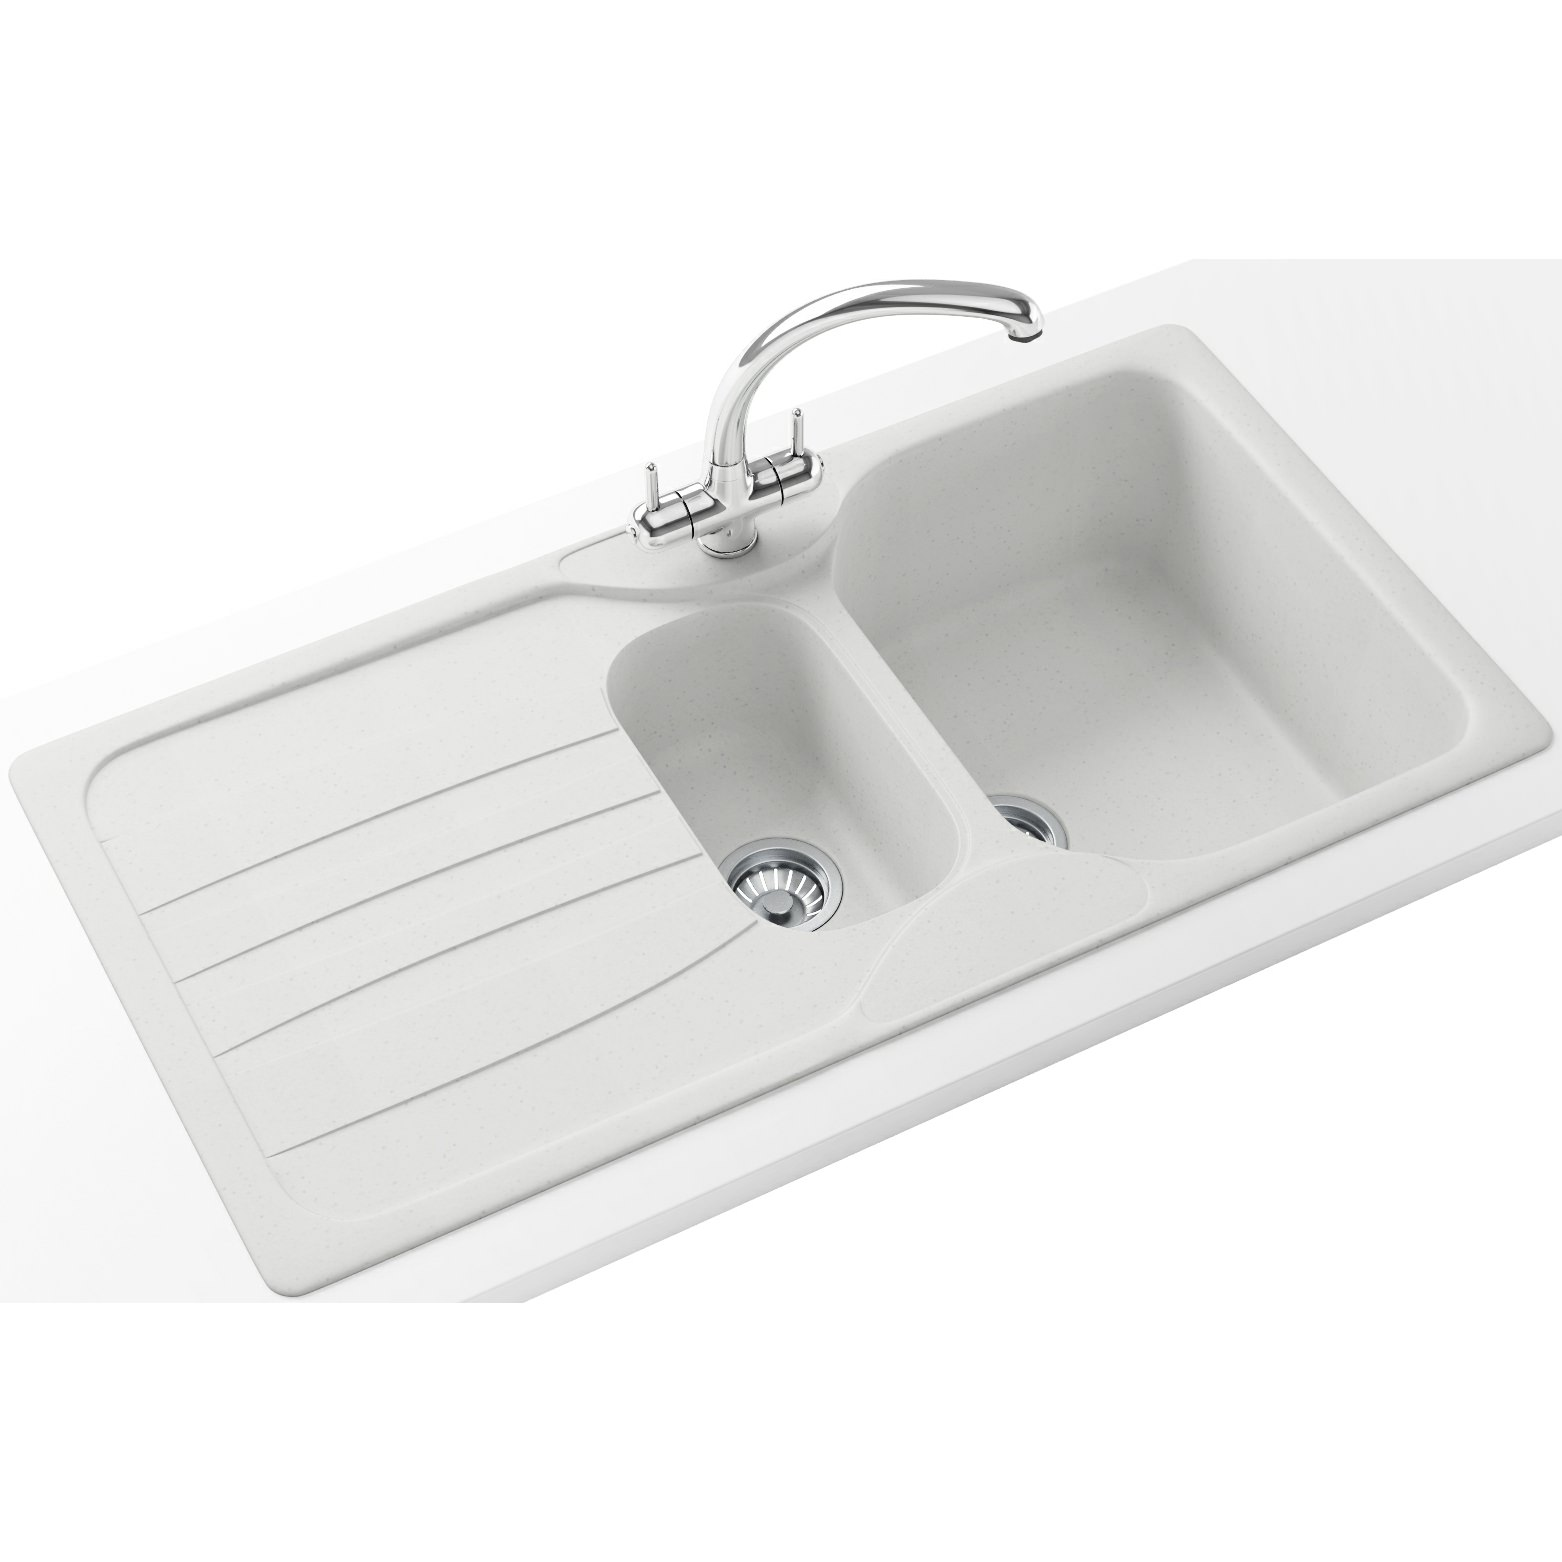 White Kitchen Taps: Franke Calypso Propack COG 651 Fragranite Polar White Sink